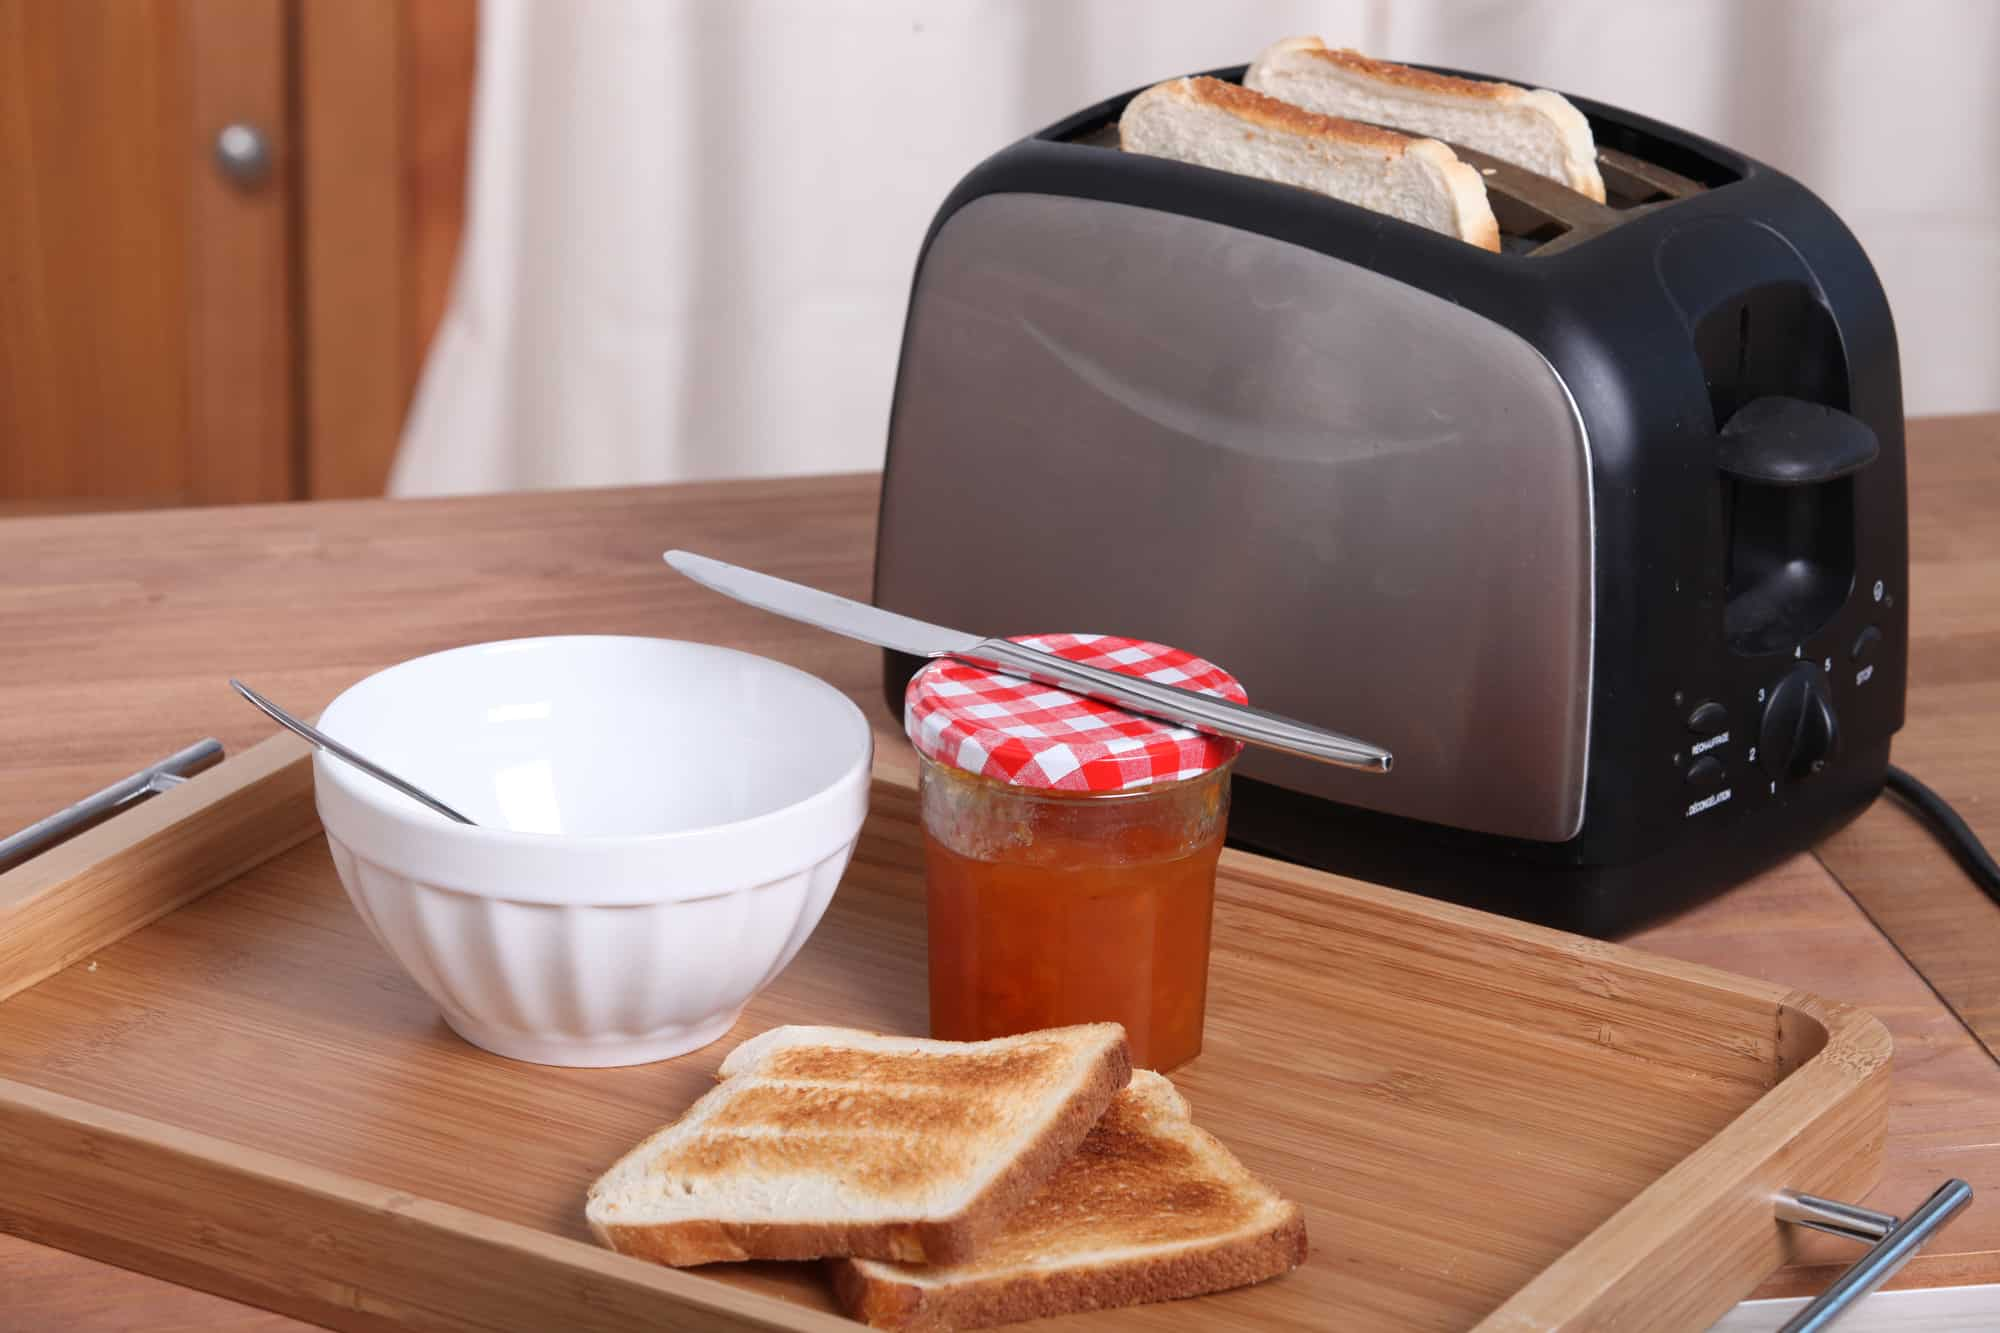 What Are Some Notable Aspects To Consider Before Buying A Toaster?